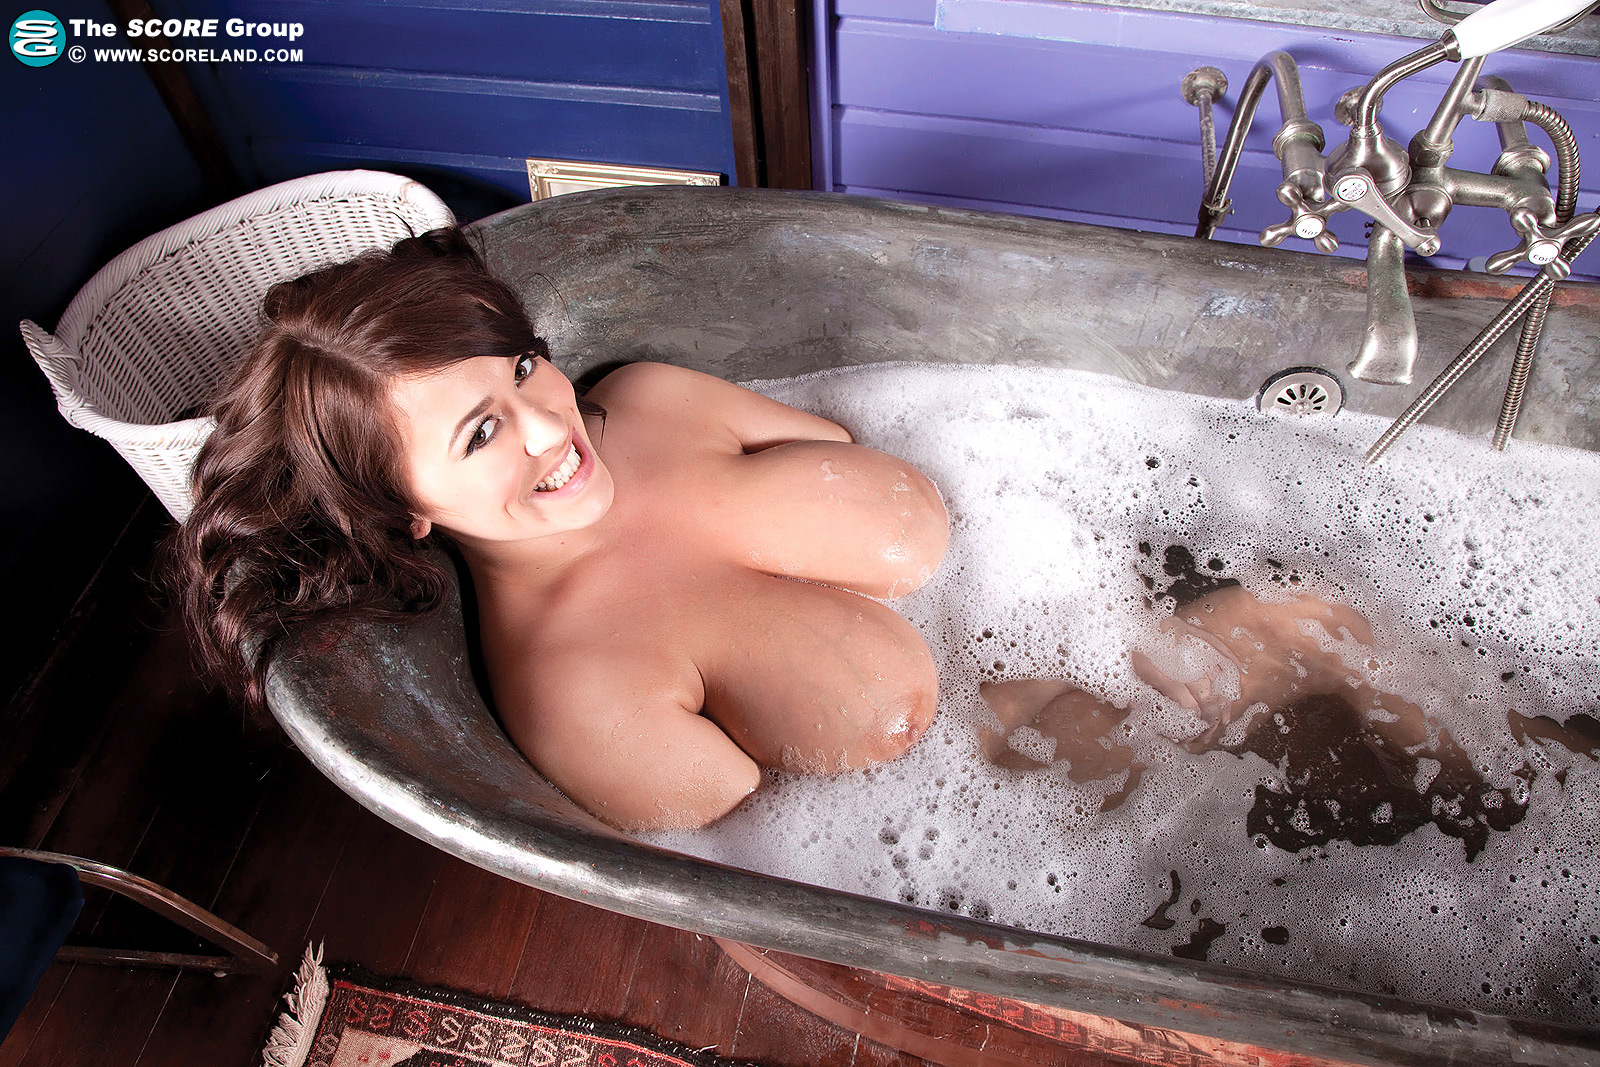 Leanne Crow Boobs emerge from the bath 04